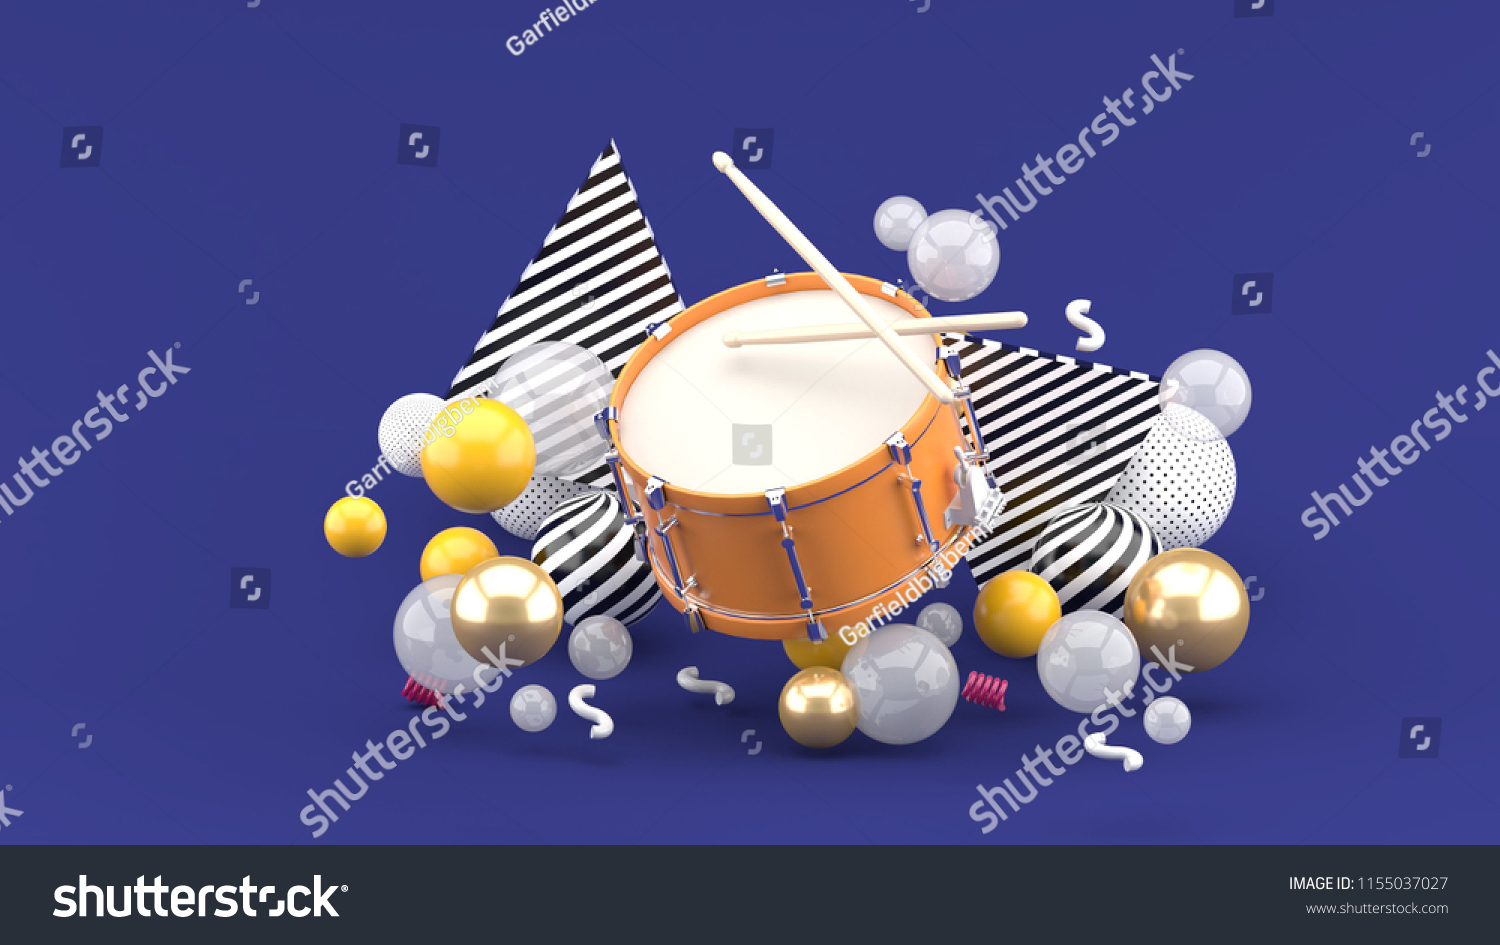 070ee8ea6 Orange snare among the colorful balls on the purple background.-3d  rendering.